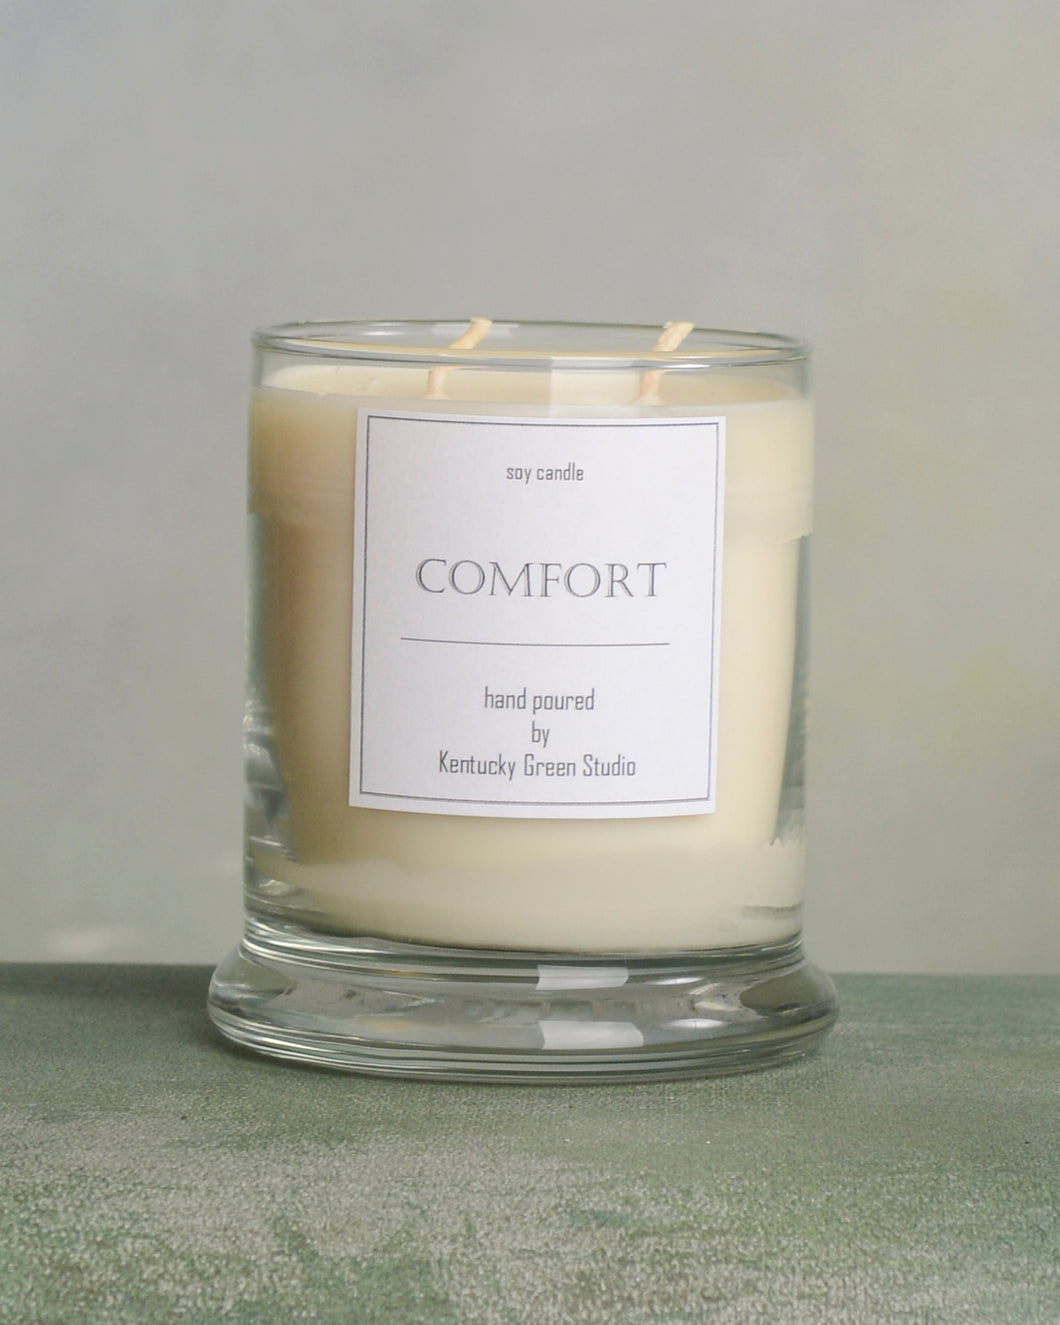 Comfort Soy Candles made in Lexington, Kentucky (KY)